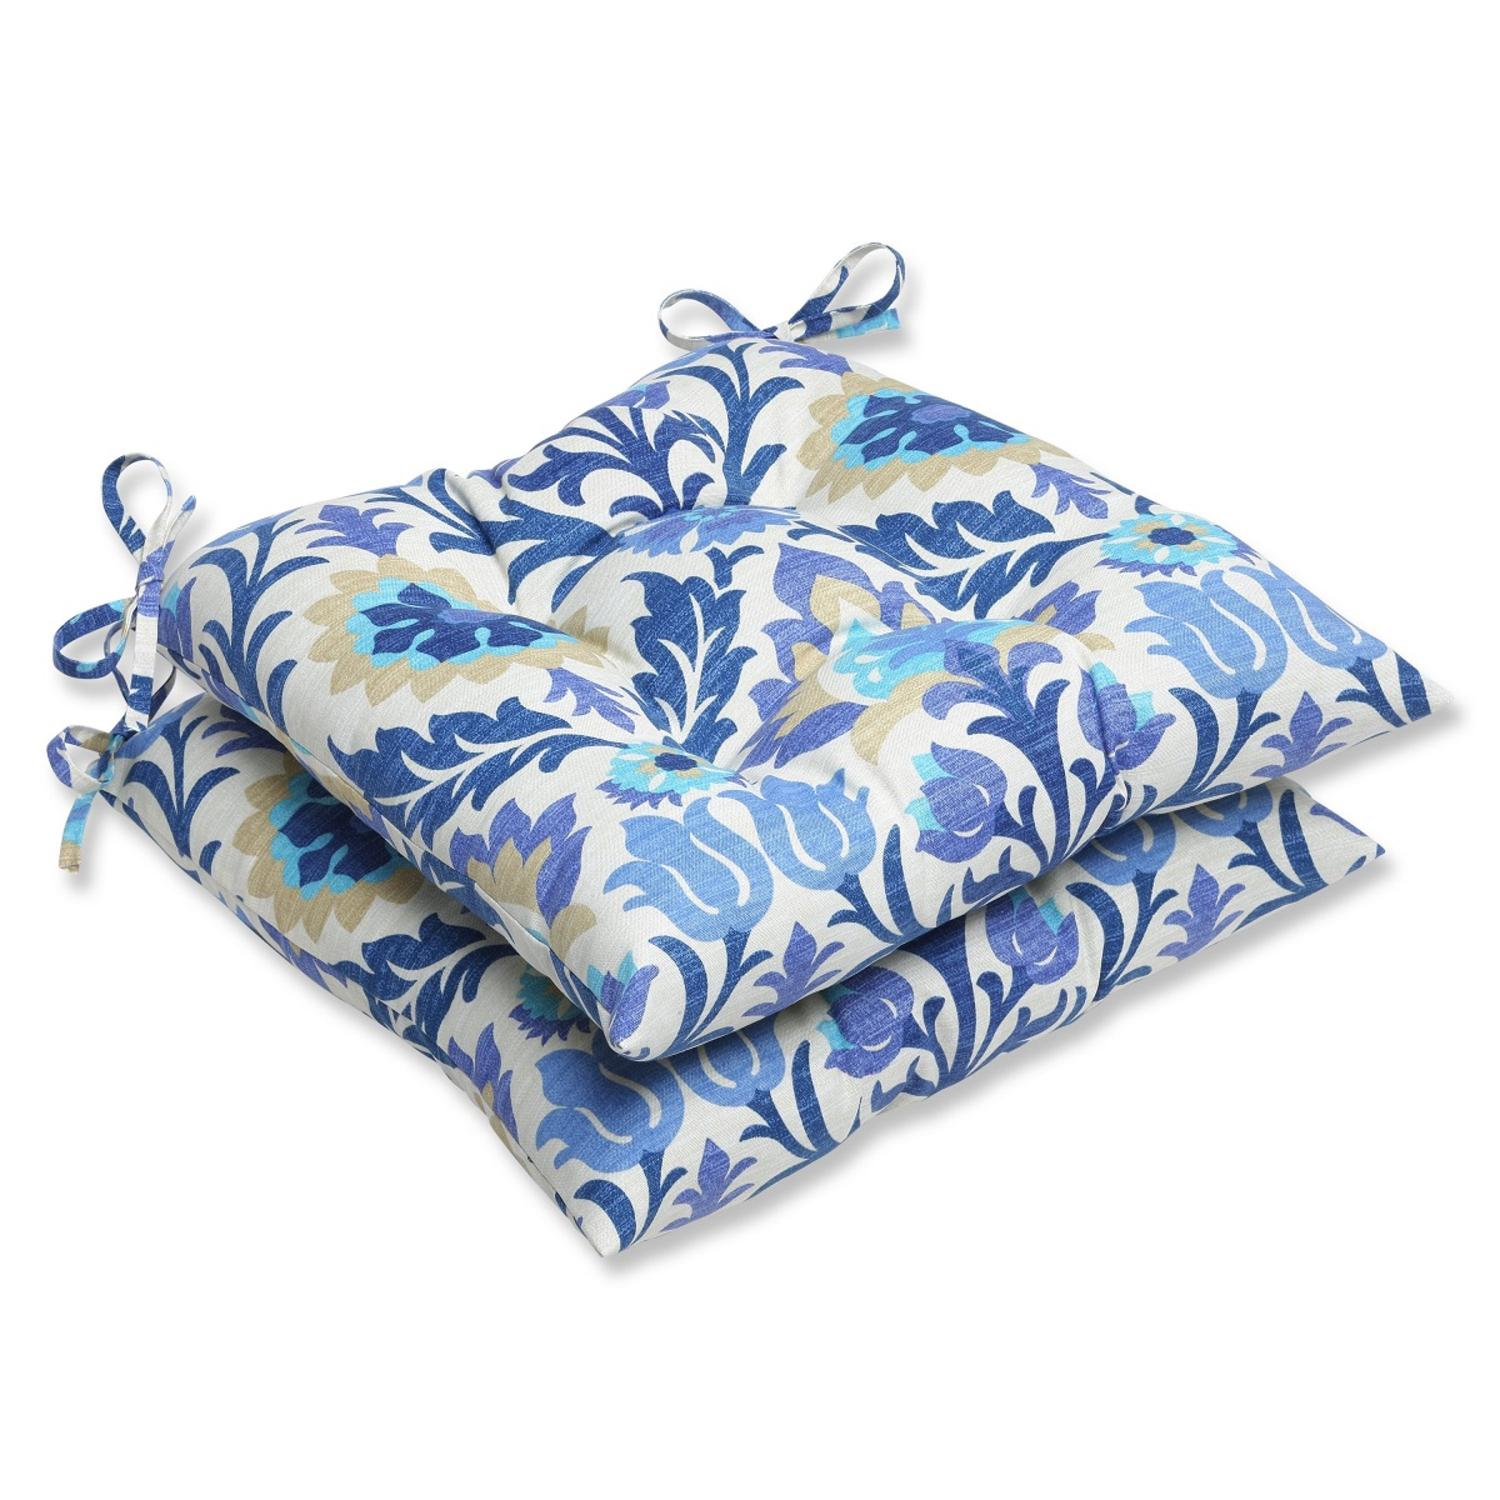 Set of 2 Dream Garden Blue, Light Taupe and Ivory Damask Patio Wrought Iron Chair Cushions 19""